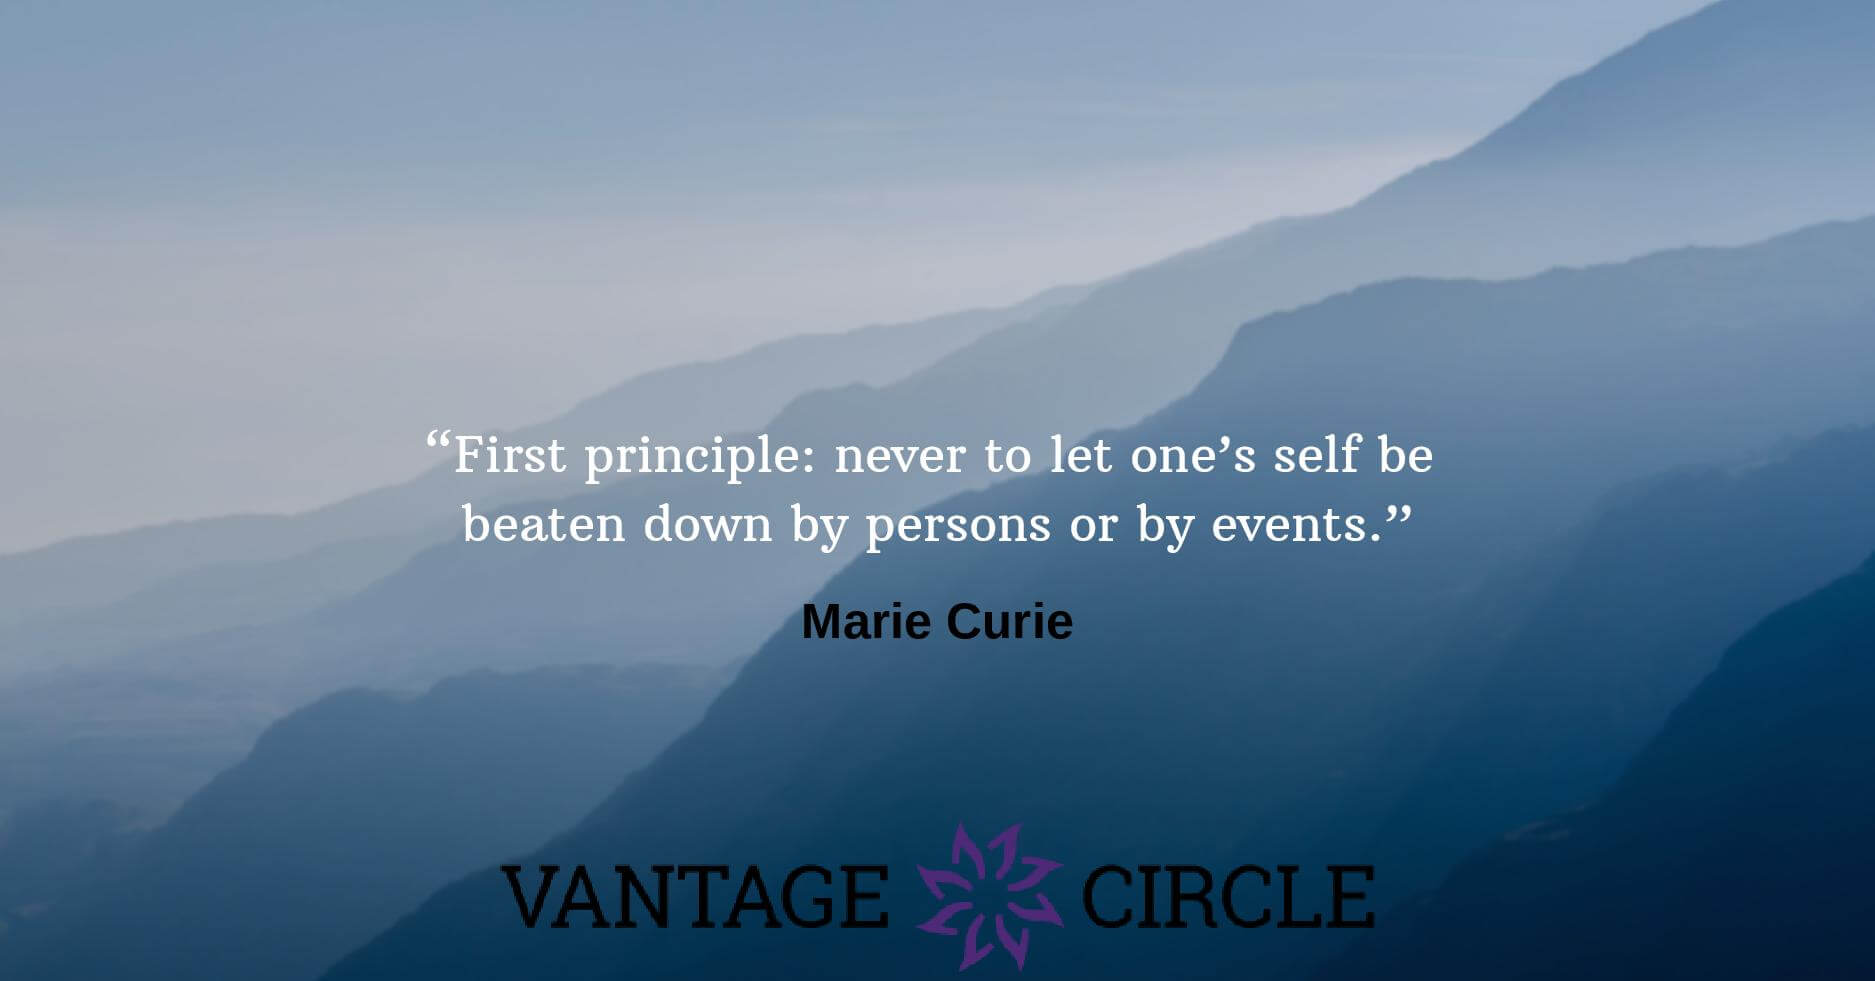 Employee-motivational-quotes-Marie-Curie